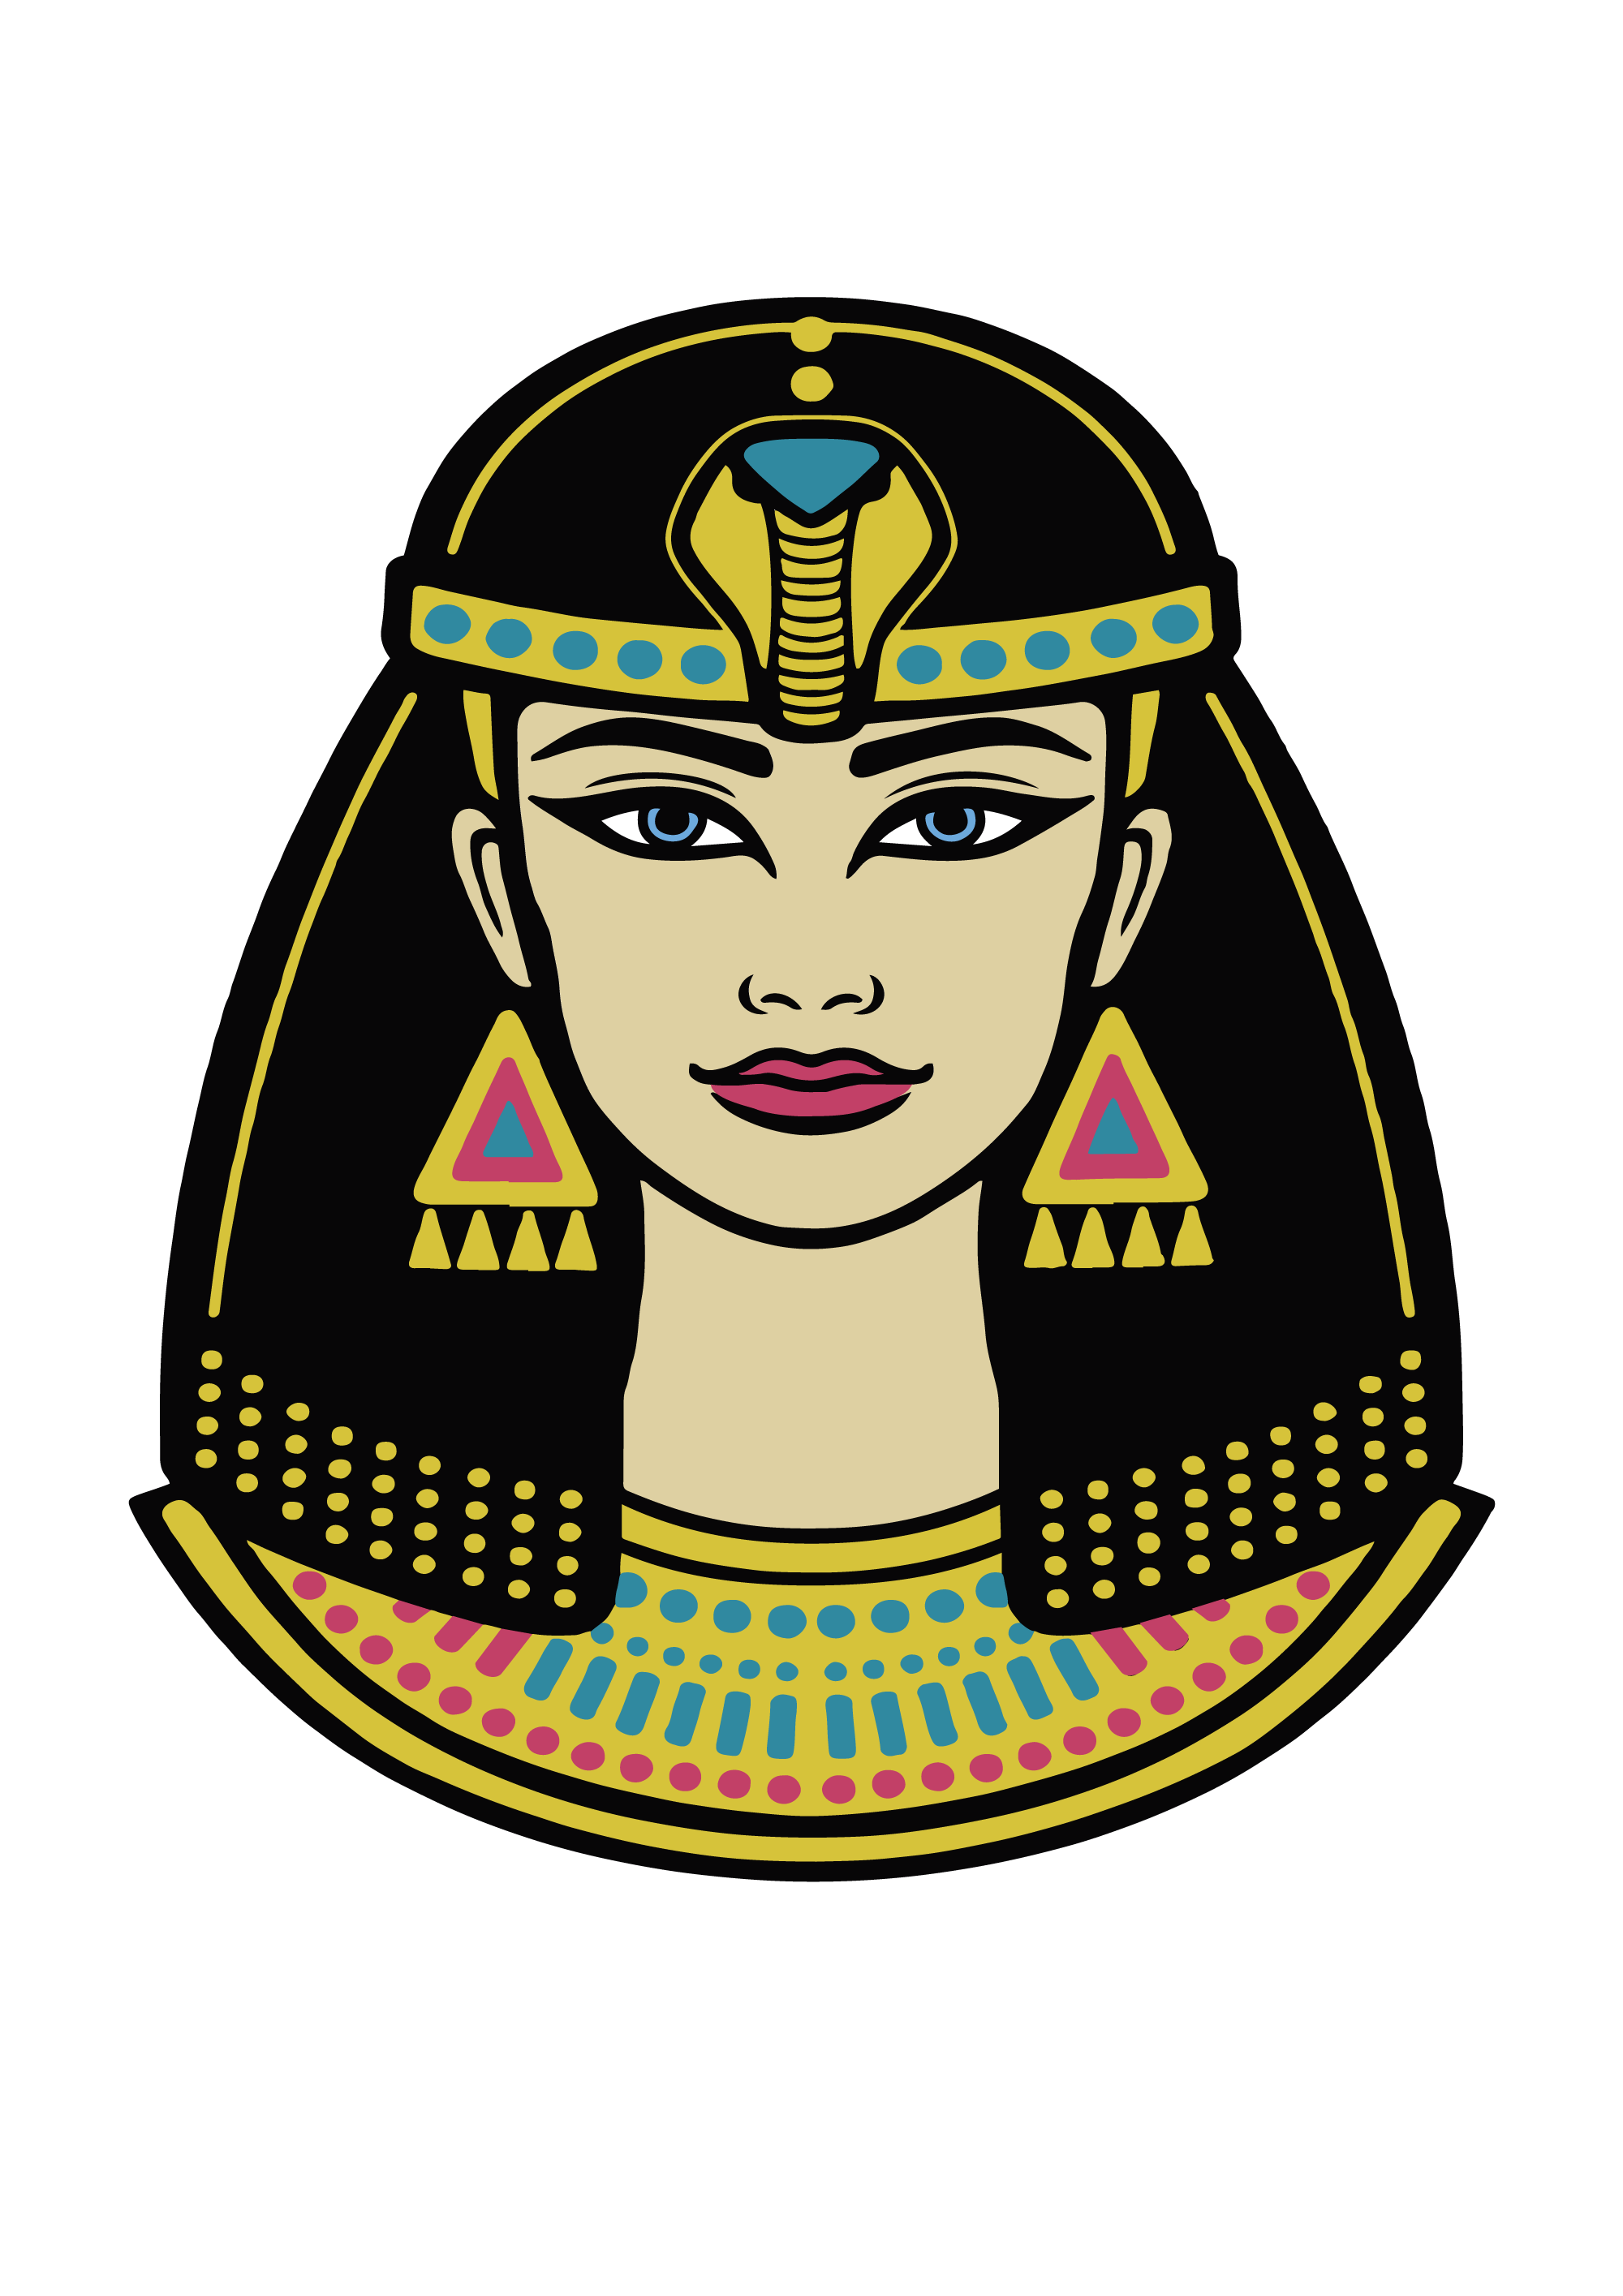 HTVRONT Free SVG File for Download - Cleopatra